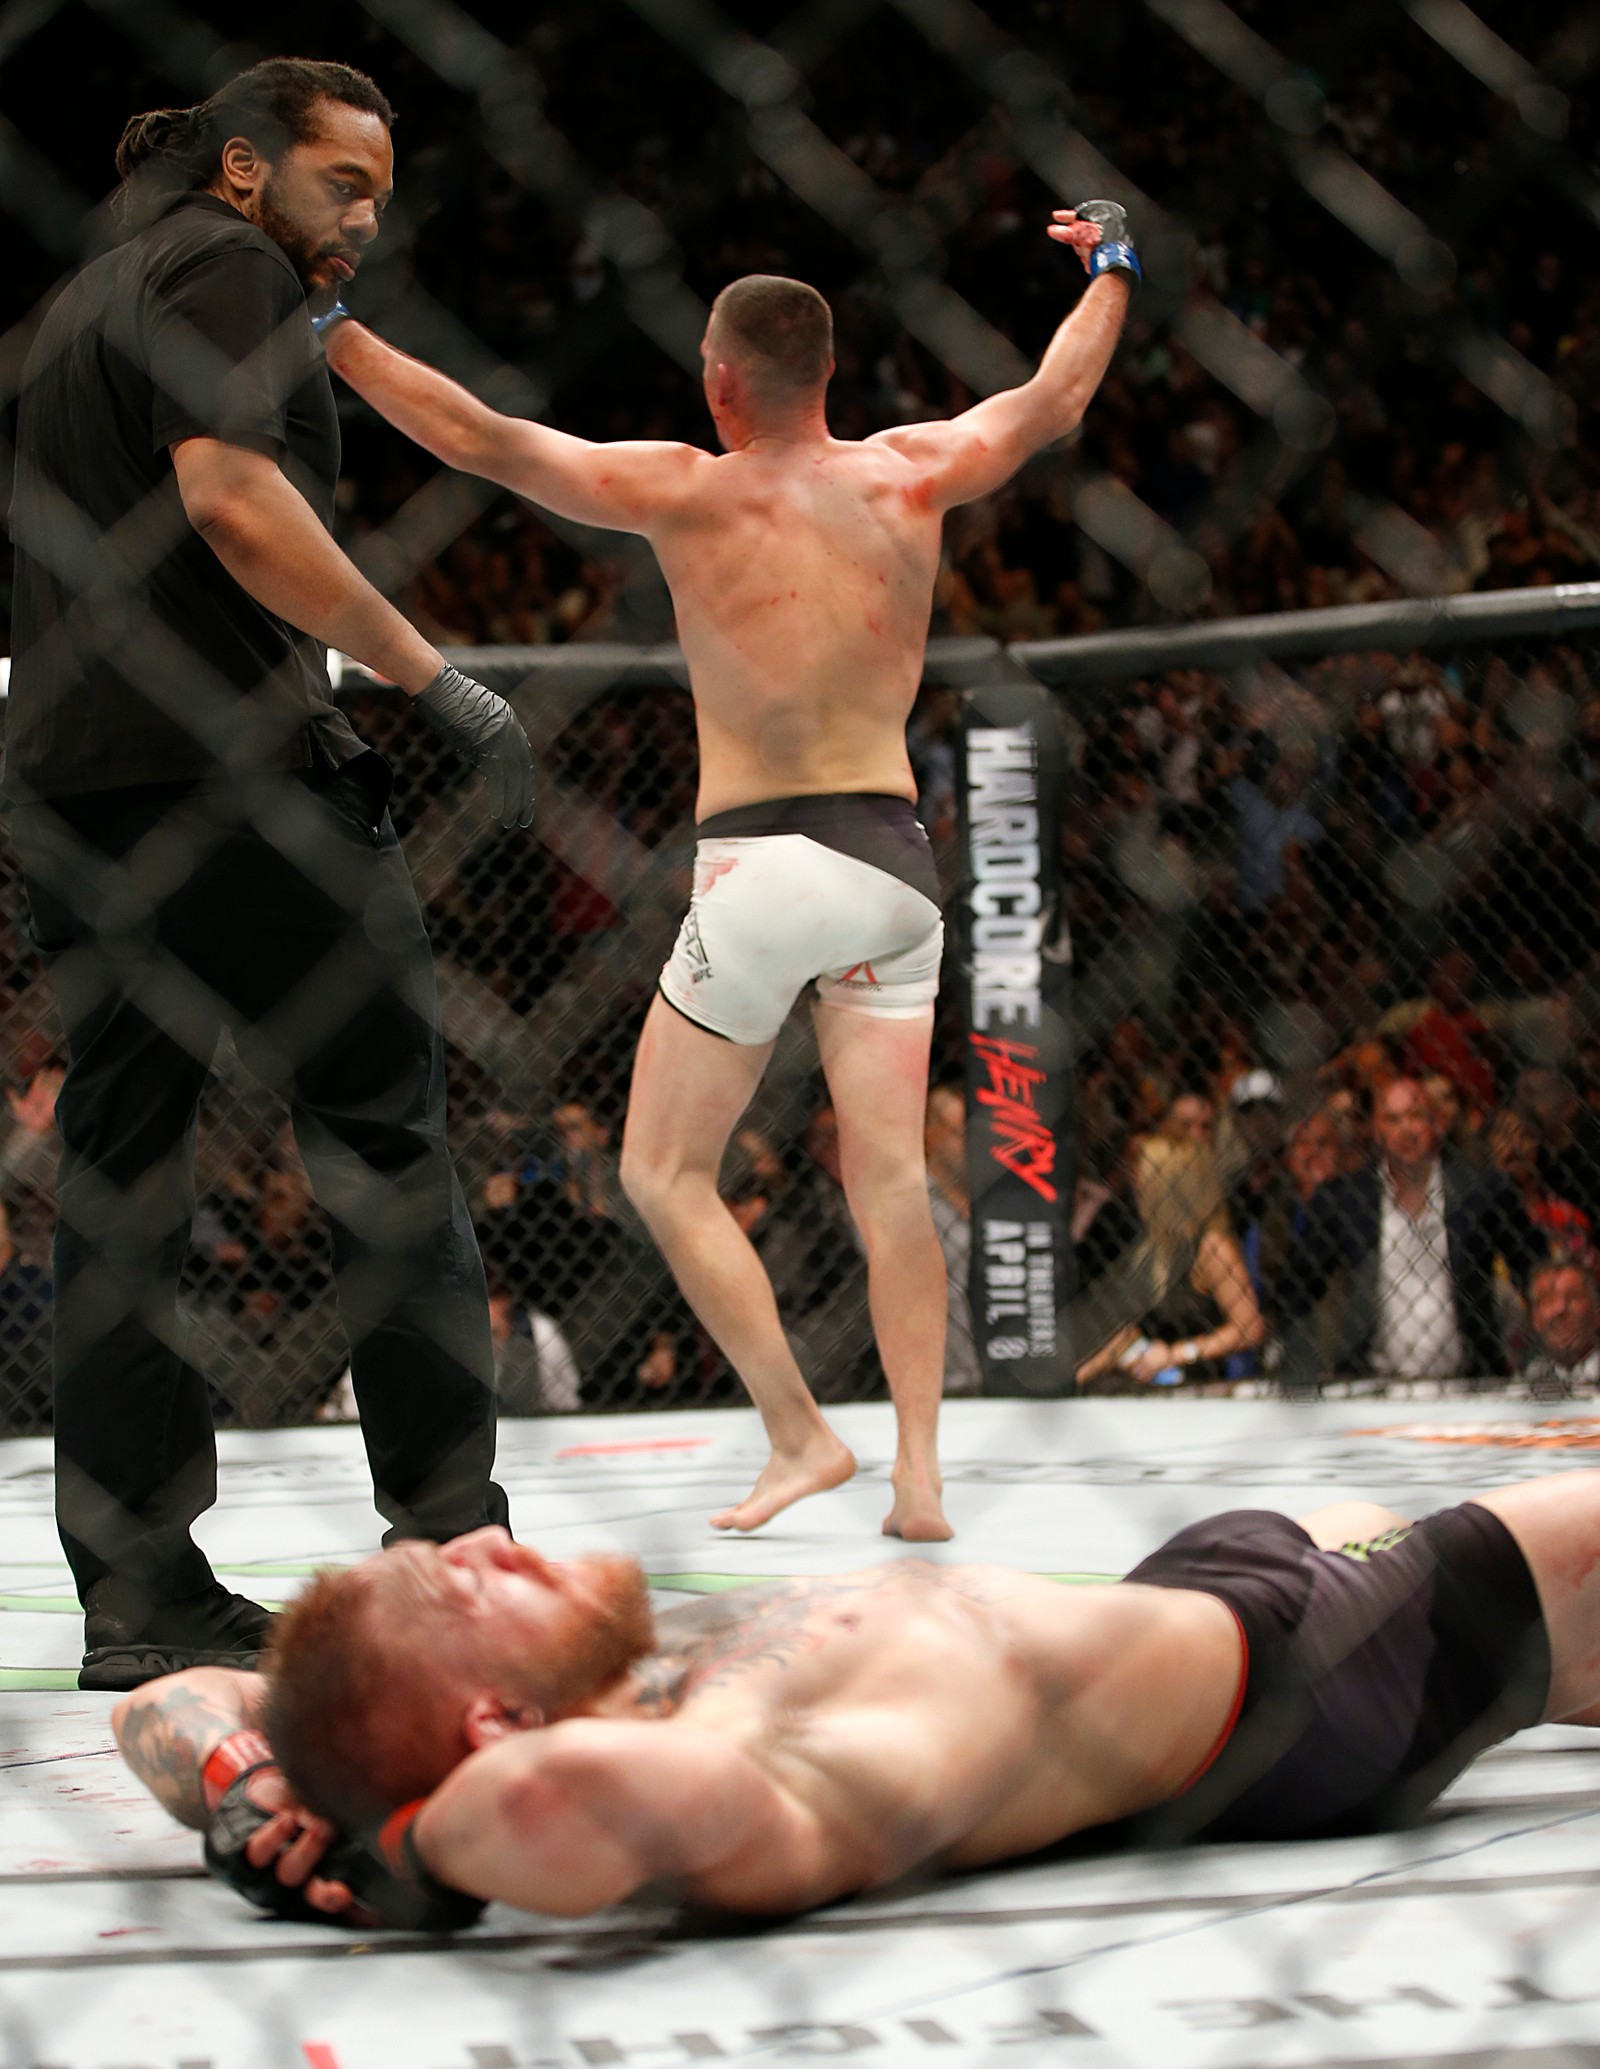 UFC 196 Mixed Martial Arts Nate Diaz, Conor McGregor Nate Diaz celebrates his second round victory over Conor McGregor during their UFC 196 welterweight mixed martial arts match Saturday, March 5, 2016, in Las Vegas. (AP Photo/Eric Jamison) Nate Diaz, Conor McGregor